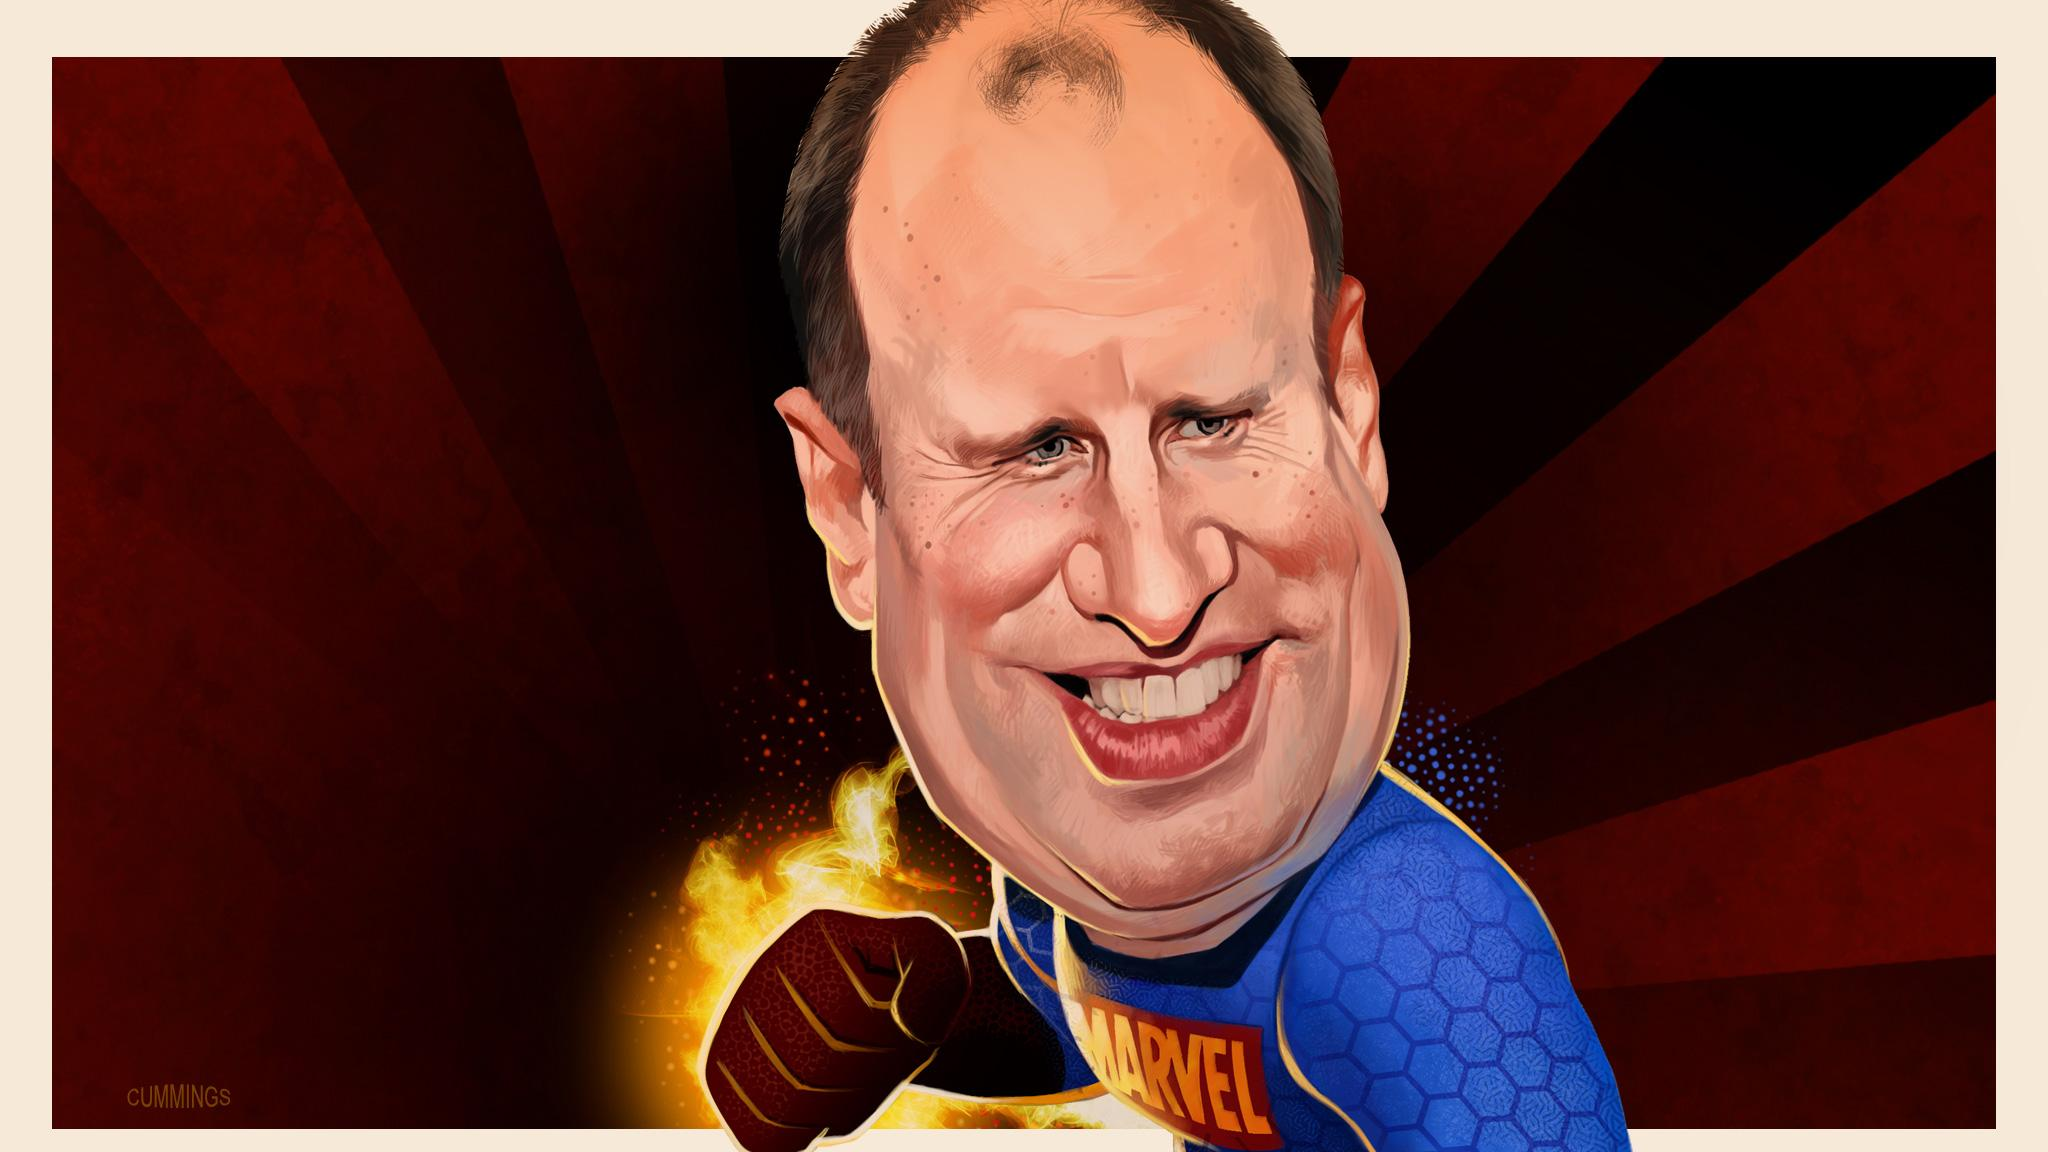 Kevin Feige: the movie nut who transformed Marvel